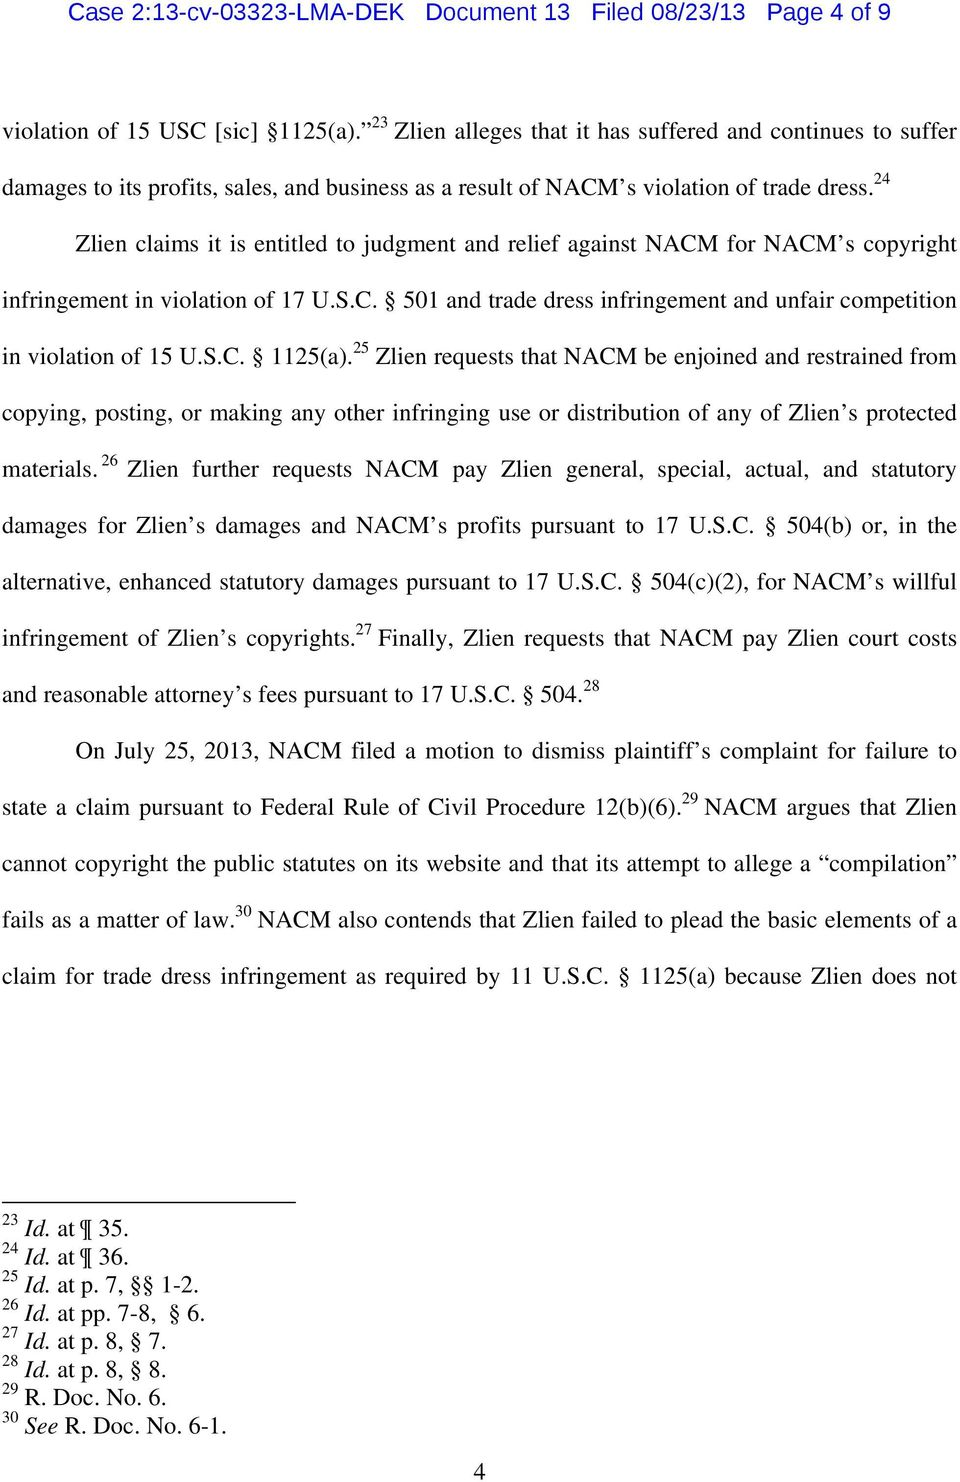 24 Zlien claims it is entitled to judgment and relief against NACM for NACM s copyright infringement in violation of 17 U.S.C. 501 and trade dress infringement and unfair competition in violation of 15 U.